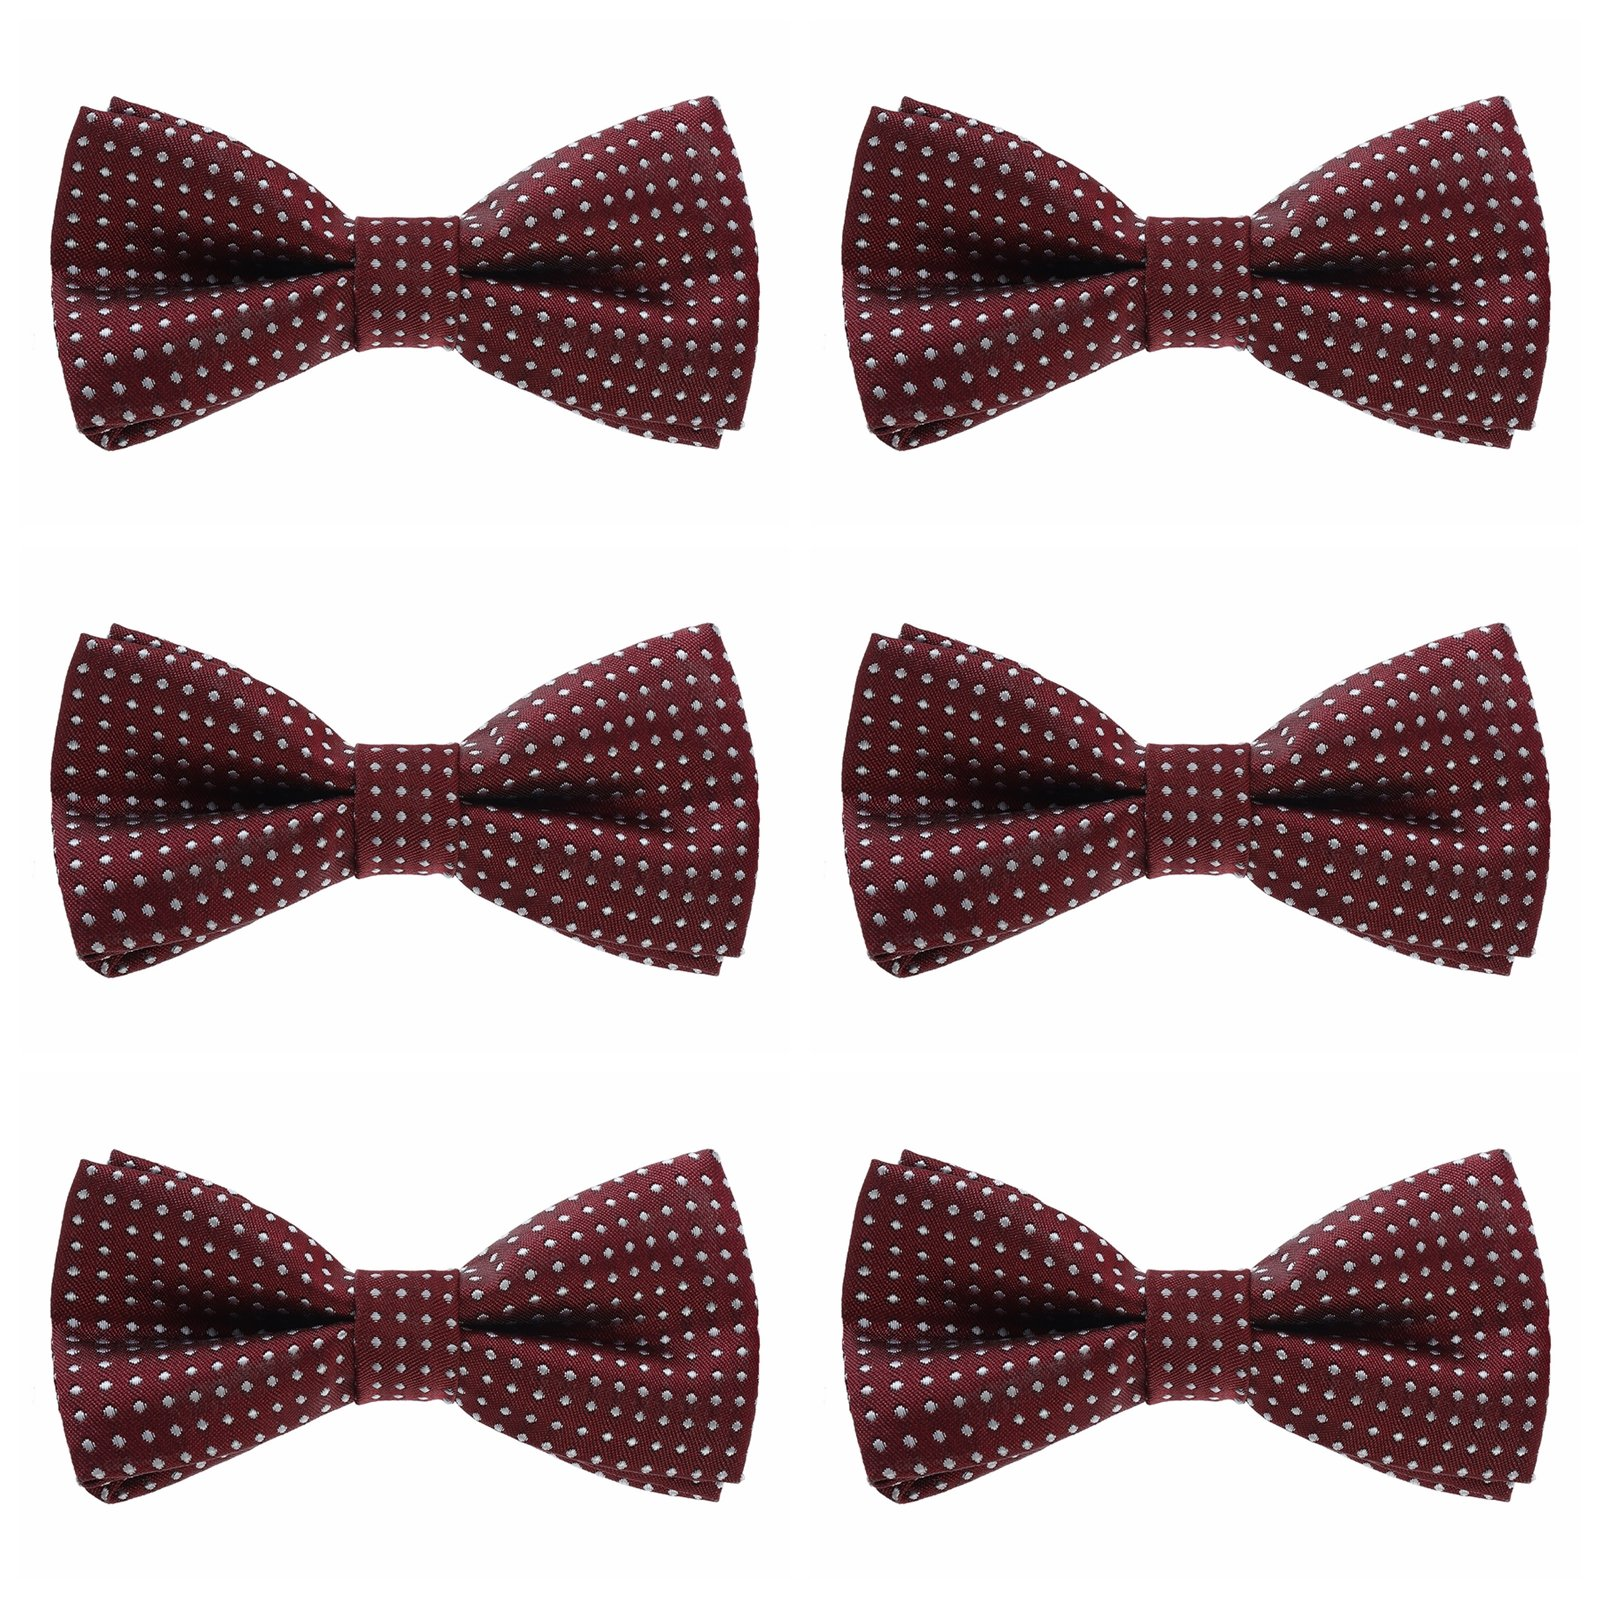 Boys Polka Dots Bow Ties - 6 Pack of Double Layer Adjustable Pre Tied Bowties (Wine Red)